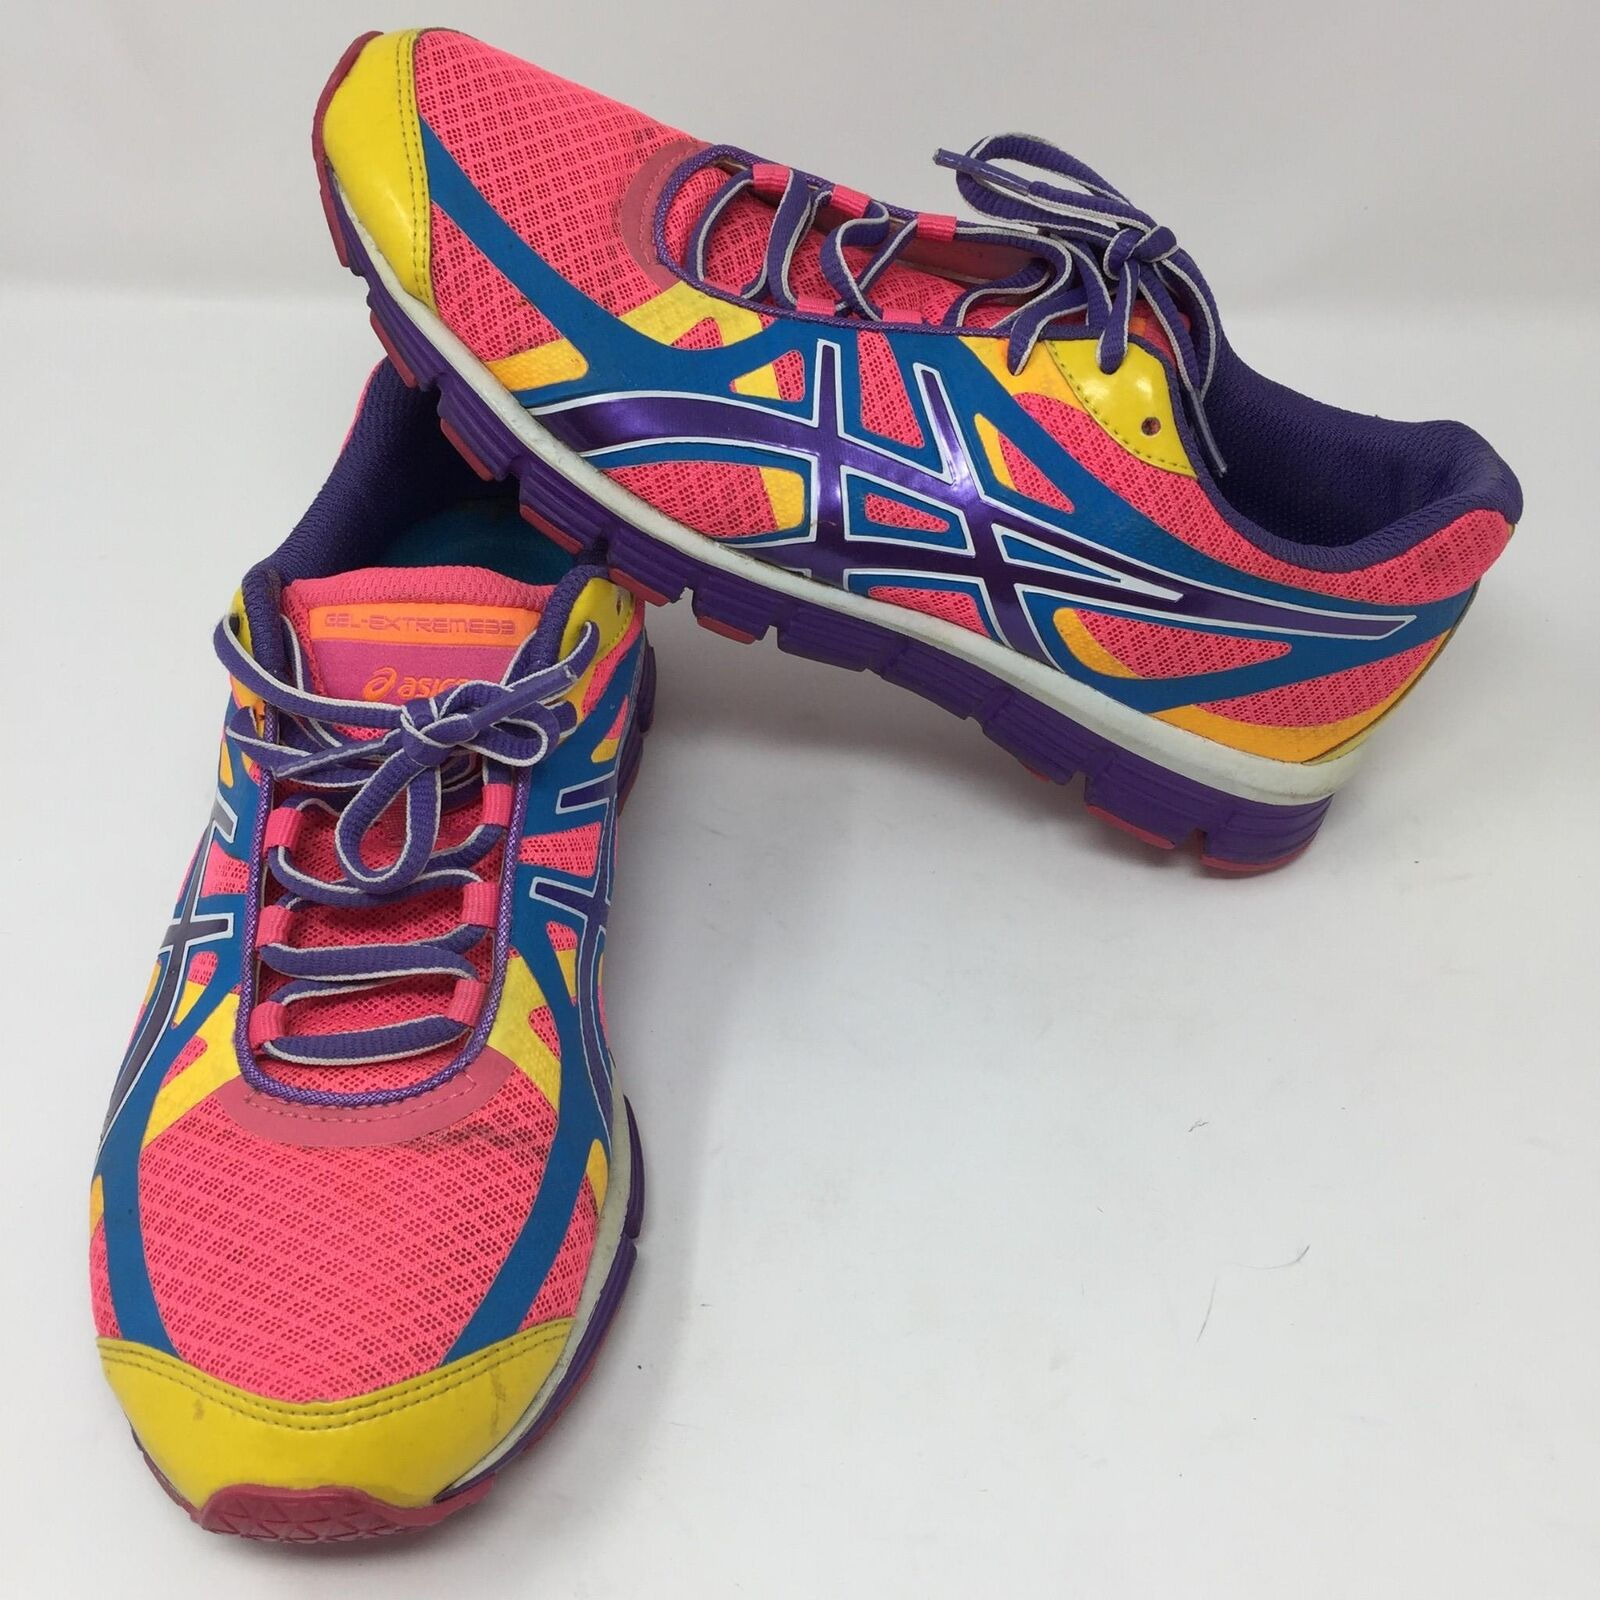 Asics Extreme 33 Multi-color Pink Purple Woman's Running shoes Size 7.5 Bright